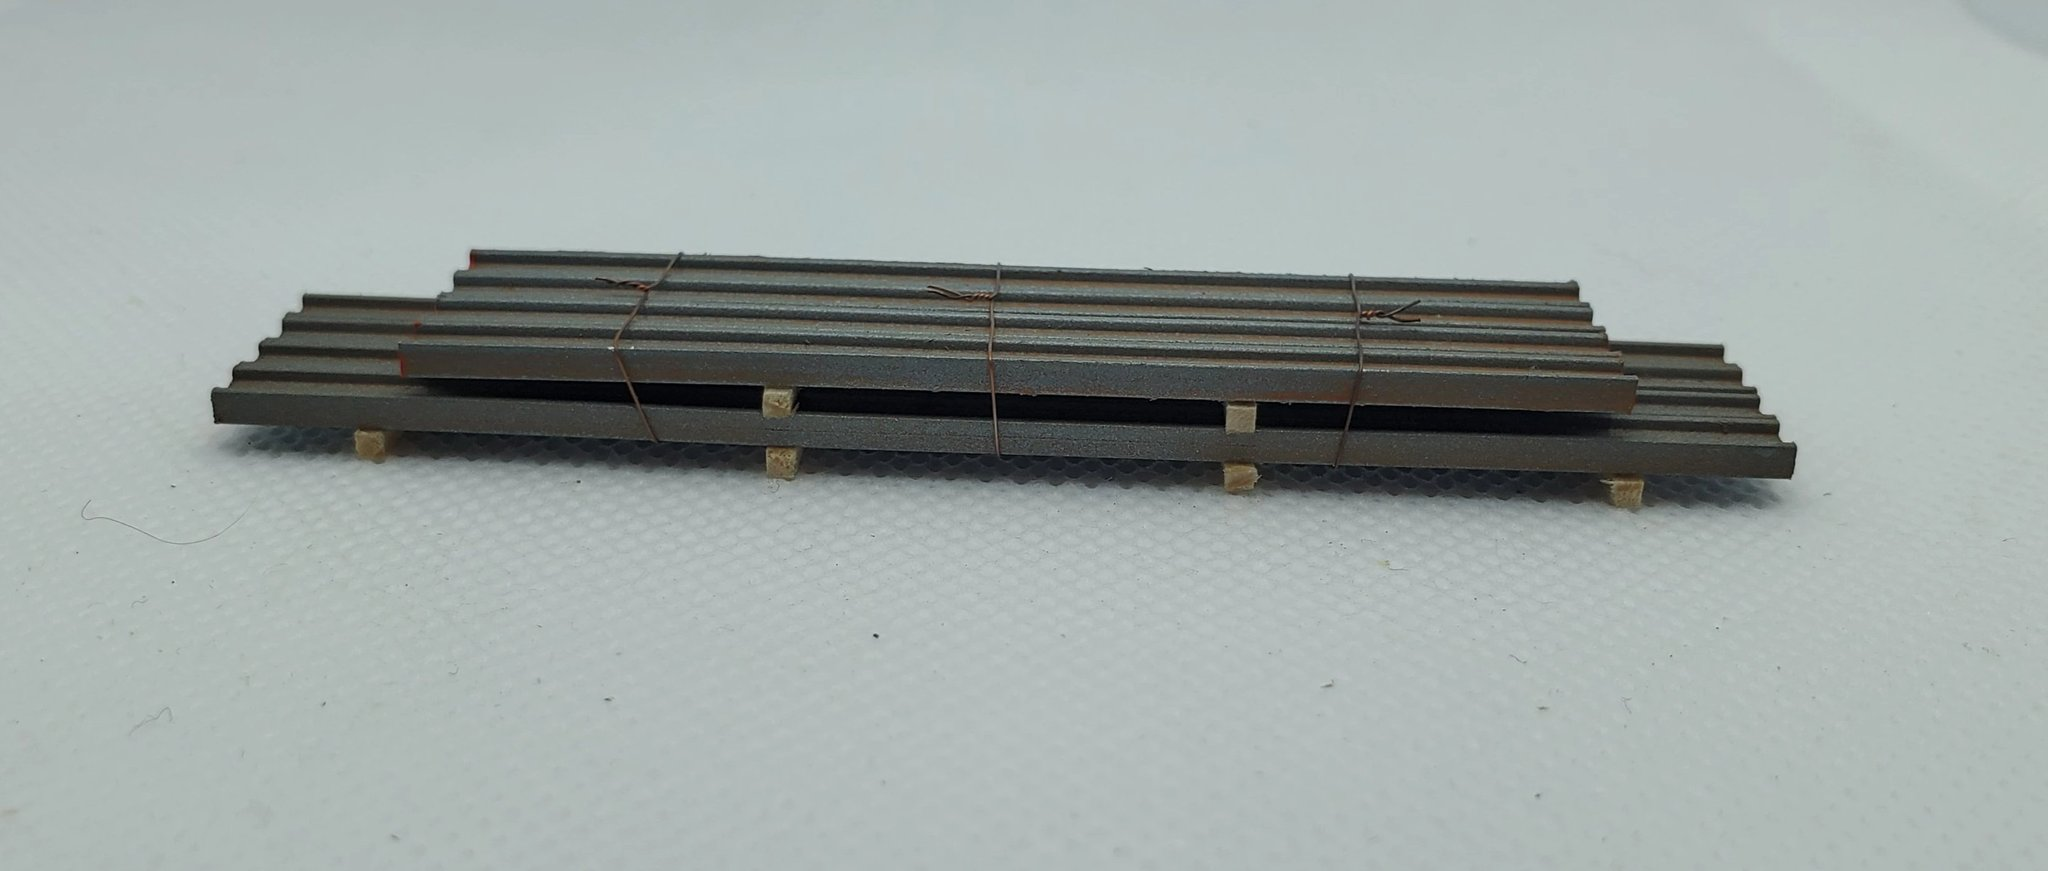 N Scale - CG Model Trains - 13425 - Railcar Loads - Painted/Unlettered - Steel I-Beams